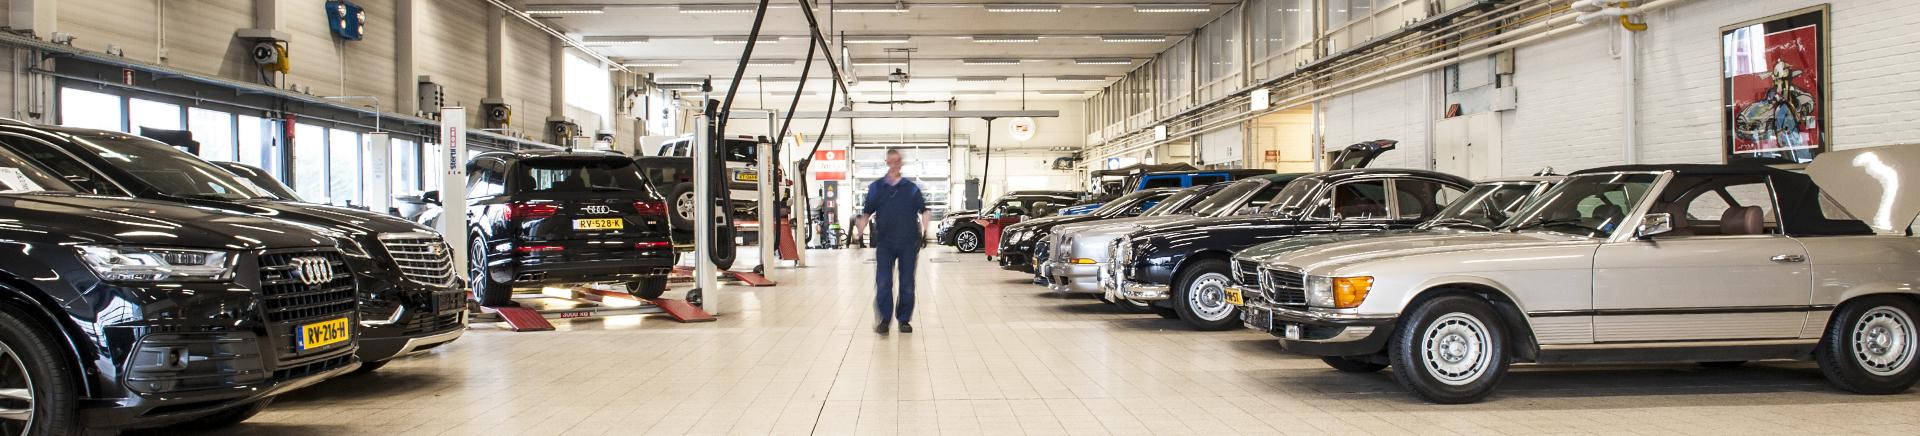 Garage Boden Vacatures Vacature Hai Hollandse Auto Importmaatschappij B V House Of Brands